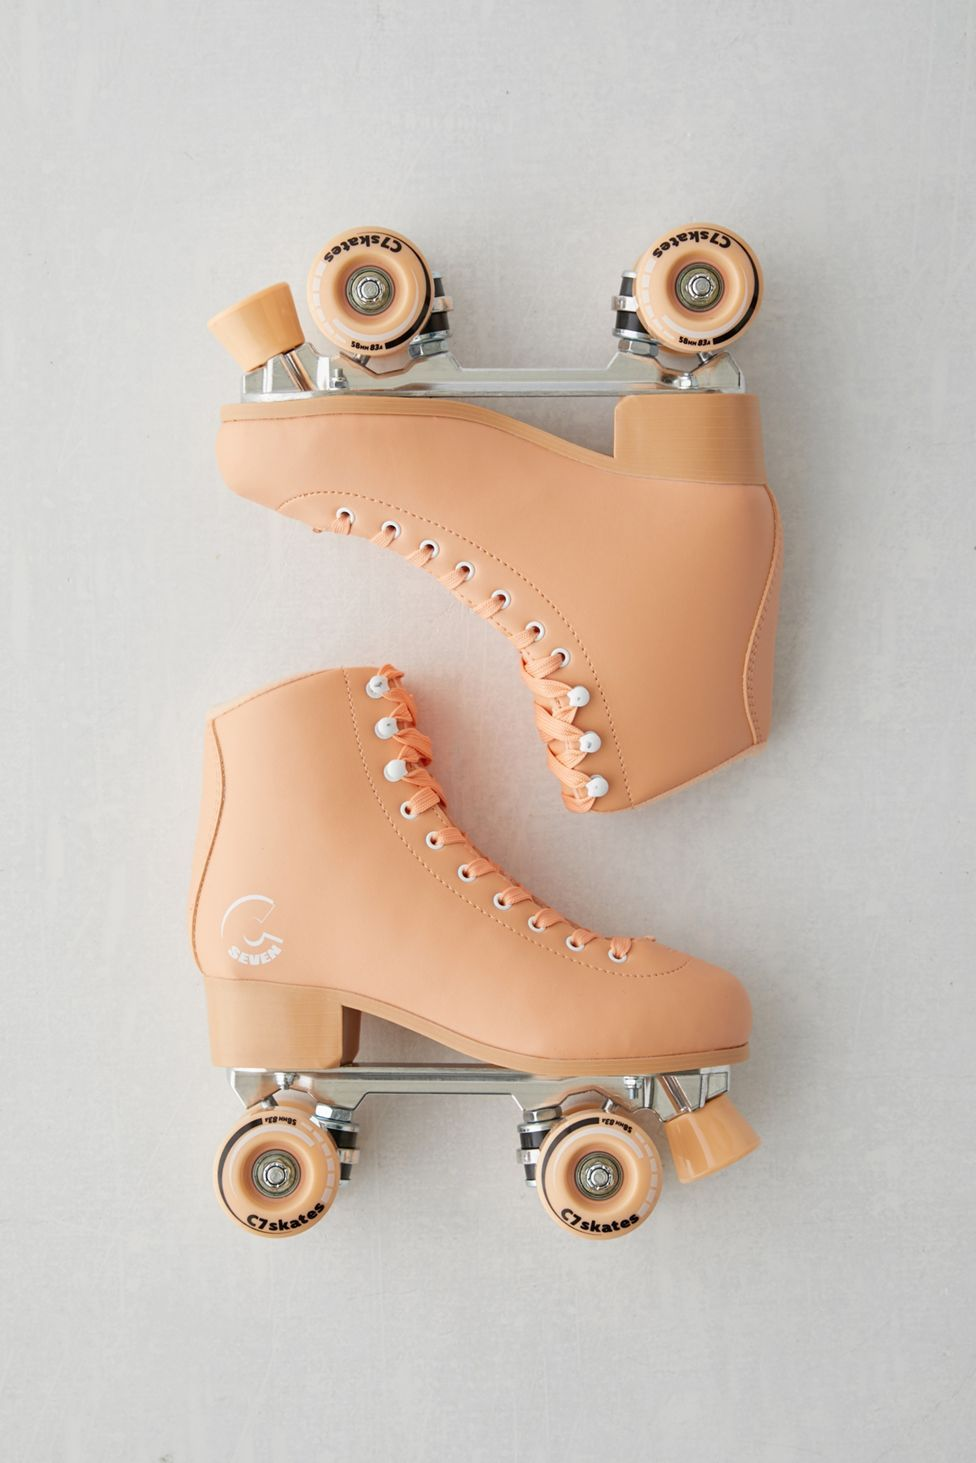 Beauty Washing Machine In 2020 Roller Skate Shoes Roller Shoes Roller Skates Vintage